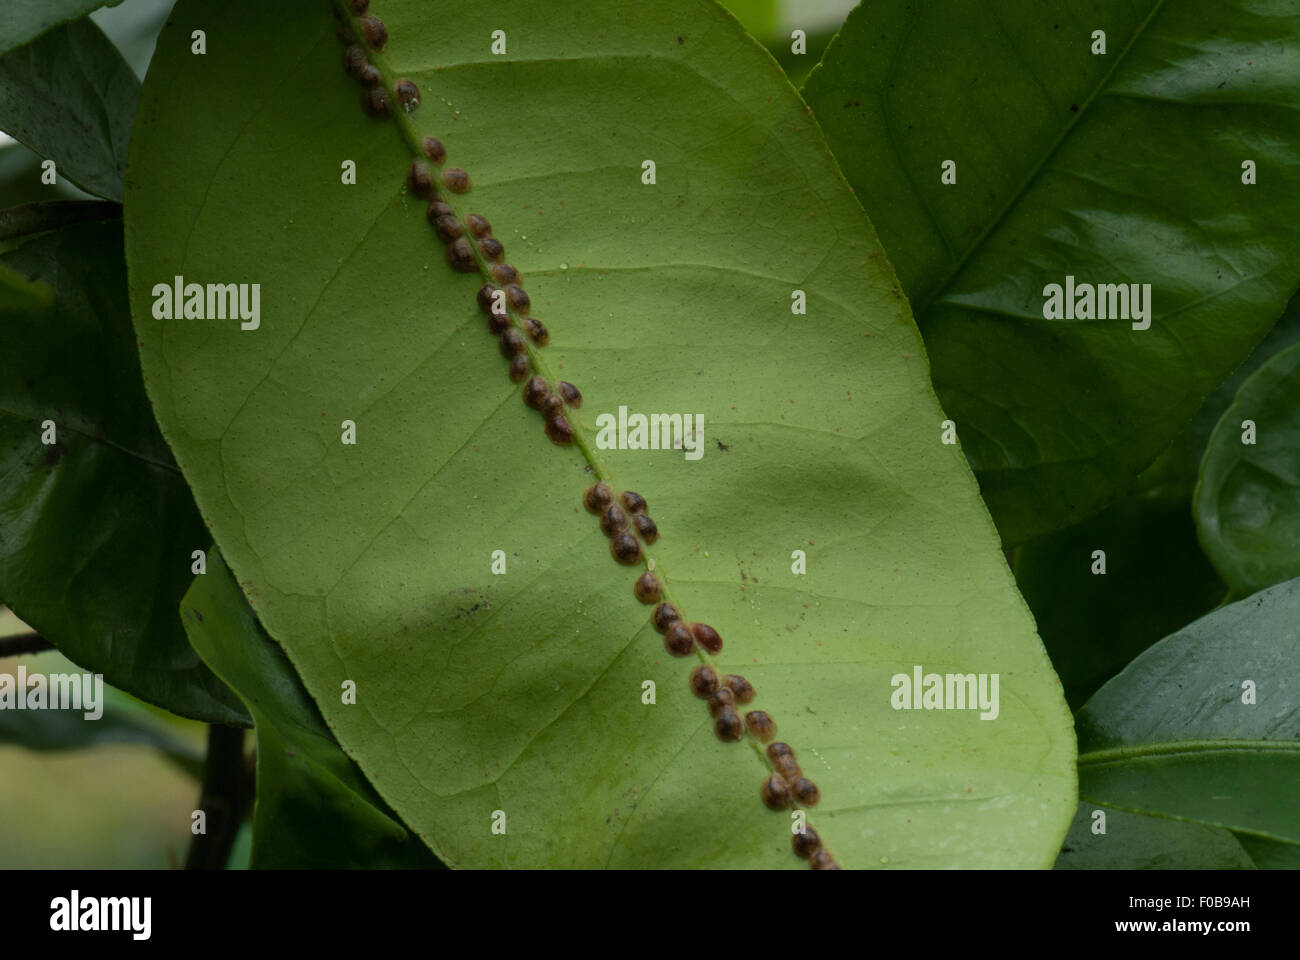 Scale insect on citrus leaves - Stock Image